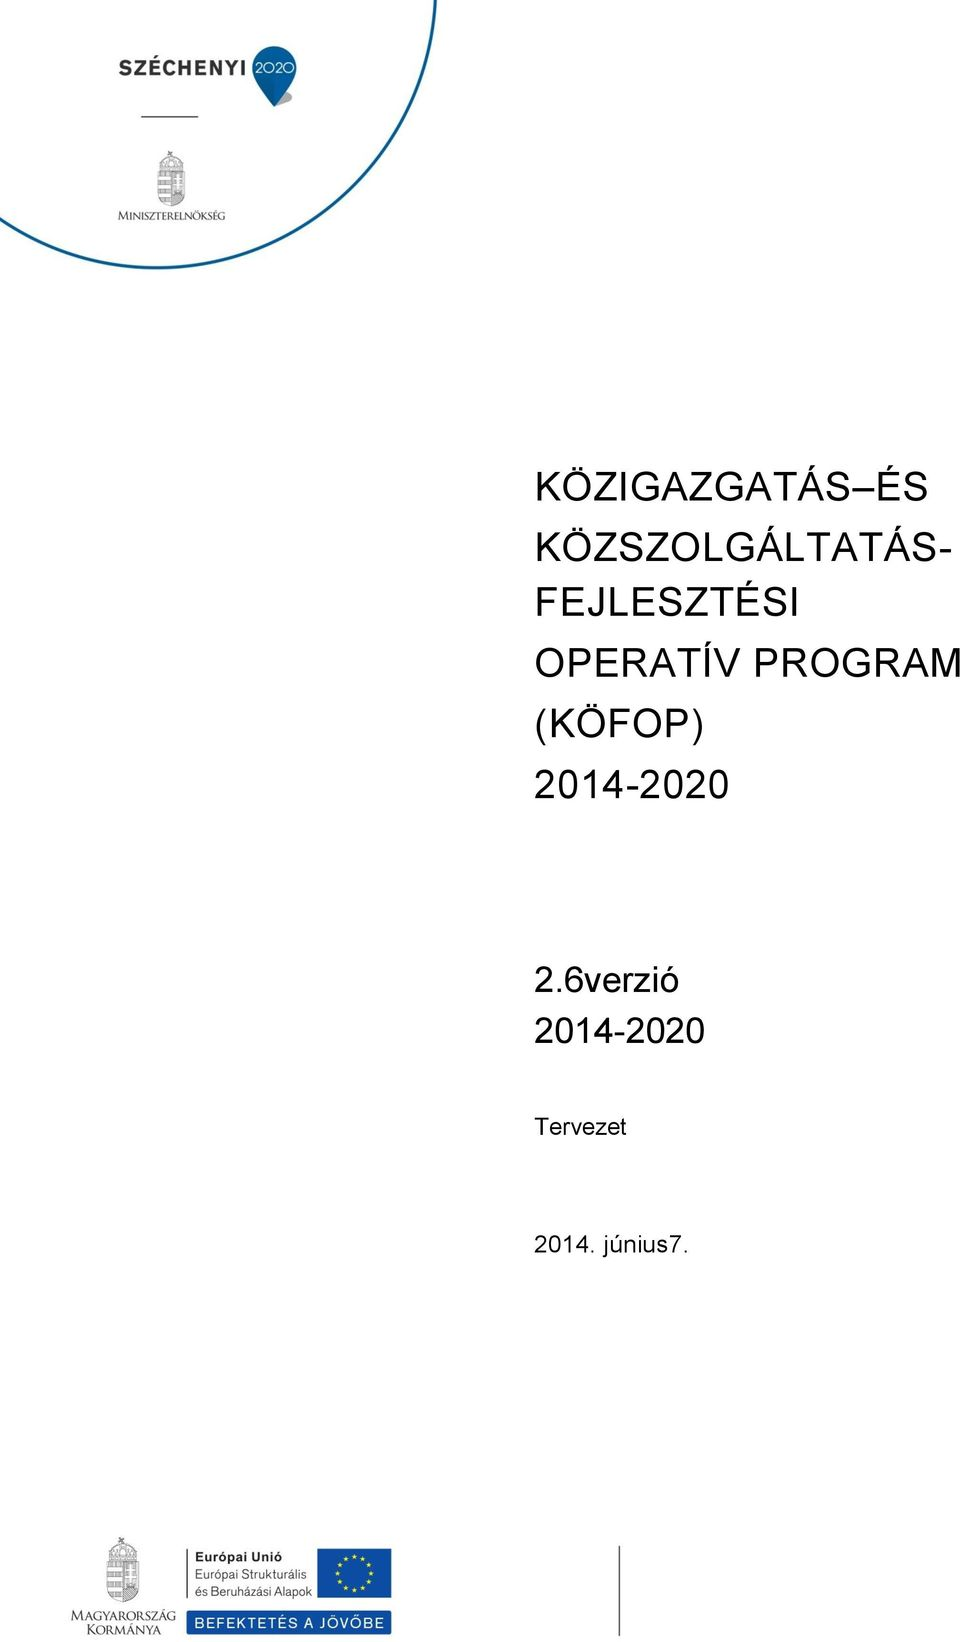 OPERATÍV PROGRAM (KÖFOP)